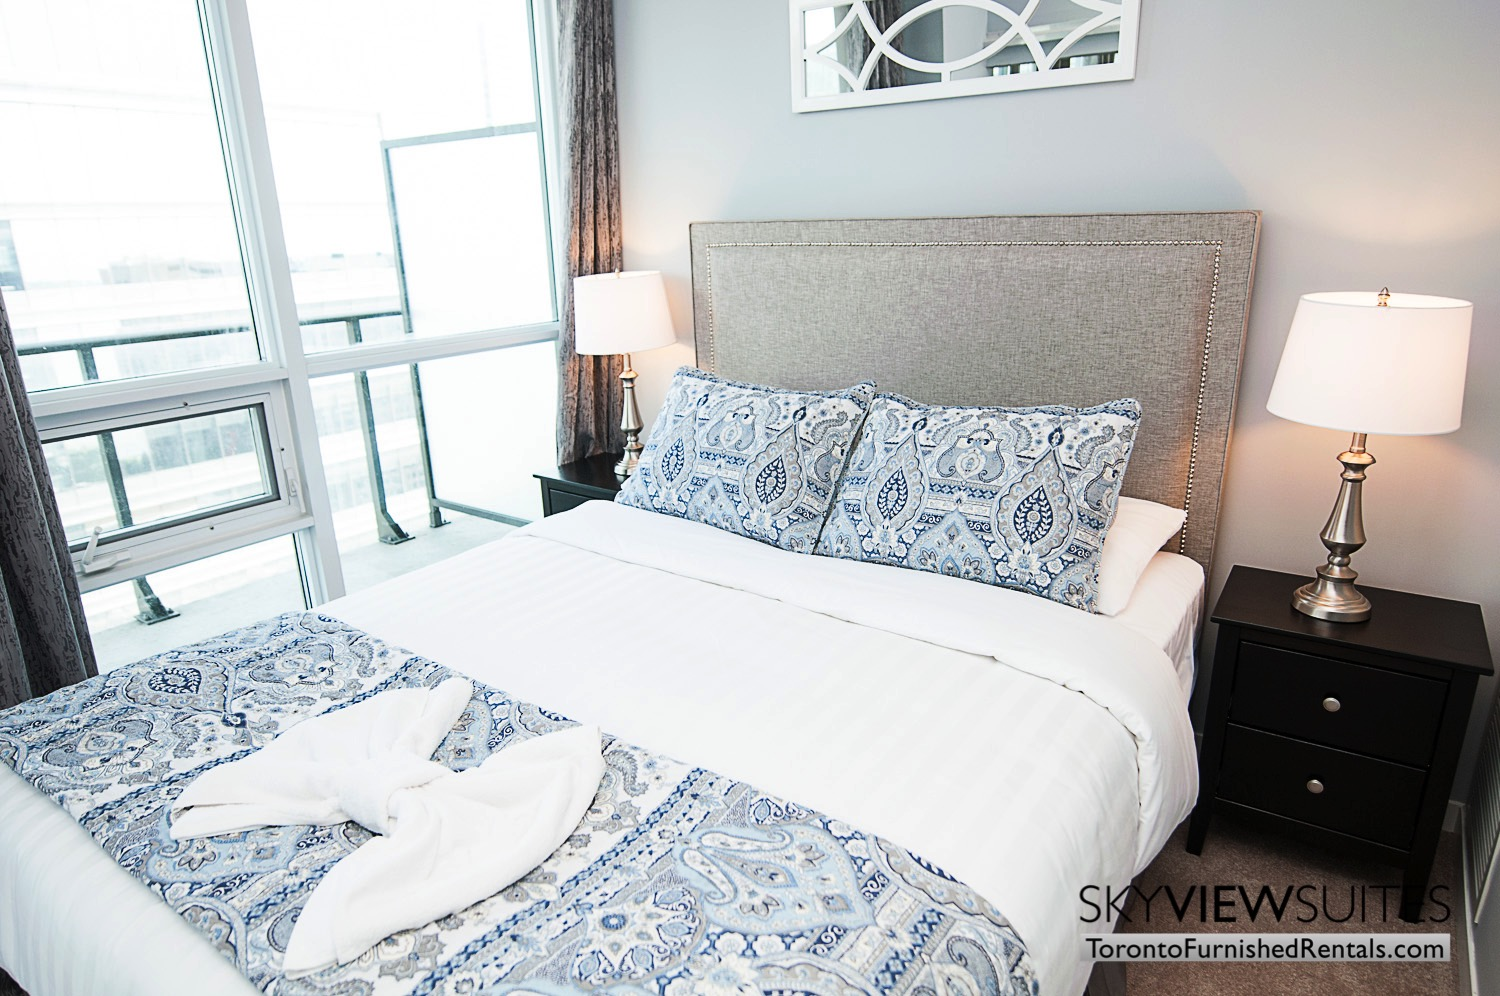 MLS furnished condo toronto bedroom blue pillows